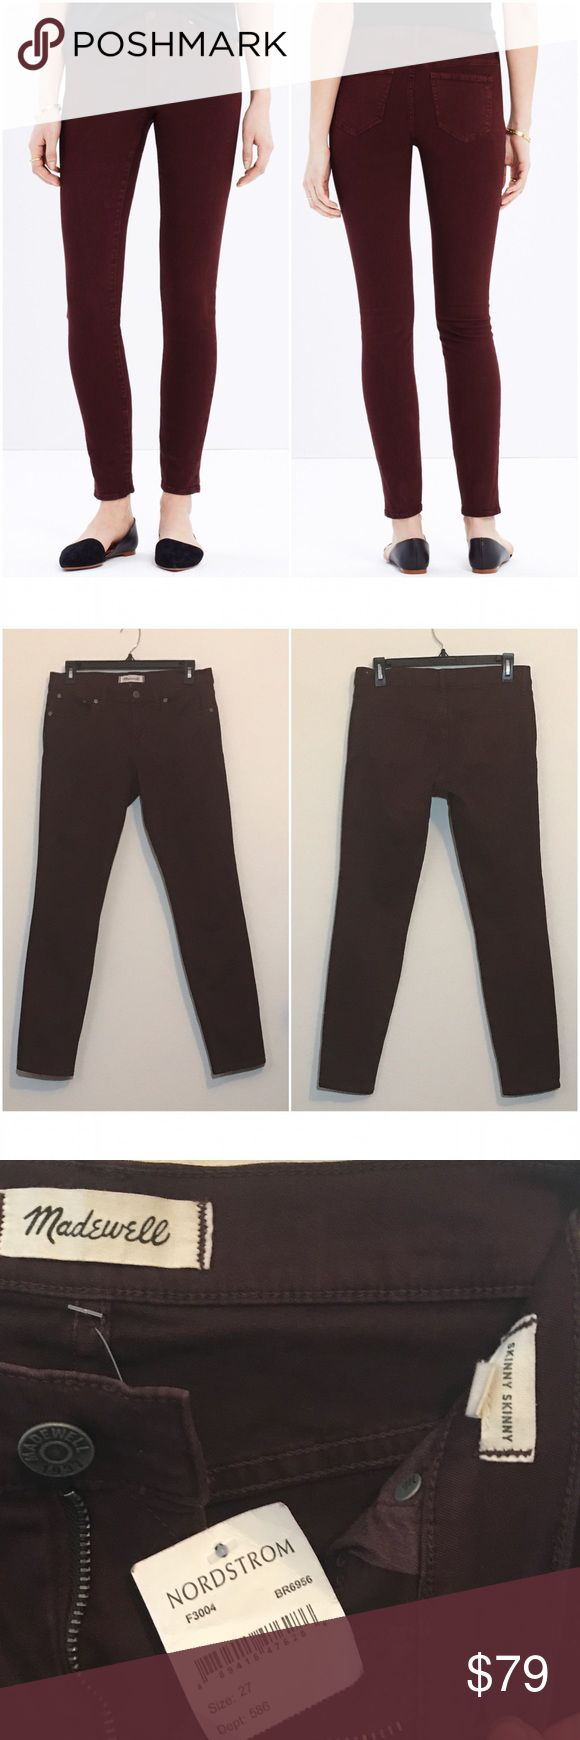 """Madewell Garnet dyed skinny skinny jeans Brand new with tags! Chocolate raisin color which is a nice burgundy.PRODUCT DETAILS Lean and sexy with a 9"""" rise (right in '70s rock-muse territory), this one's legs-for-days look and supersleek effect come from using some of the best denim in the world.   Premium 98% cotton/2% elastane denim from the Orta mill. Garment-dyed for rich, dimensional color. Matte silver hardware, tonal stitching. Sit above hip, fitted through hip and thigh, with a slim…"""